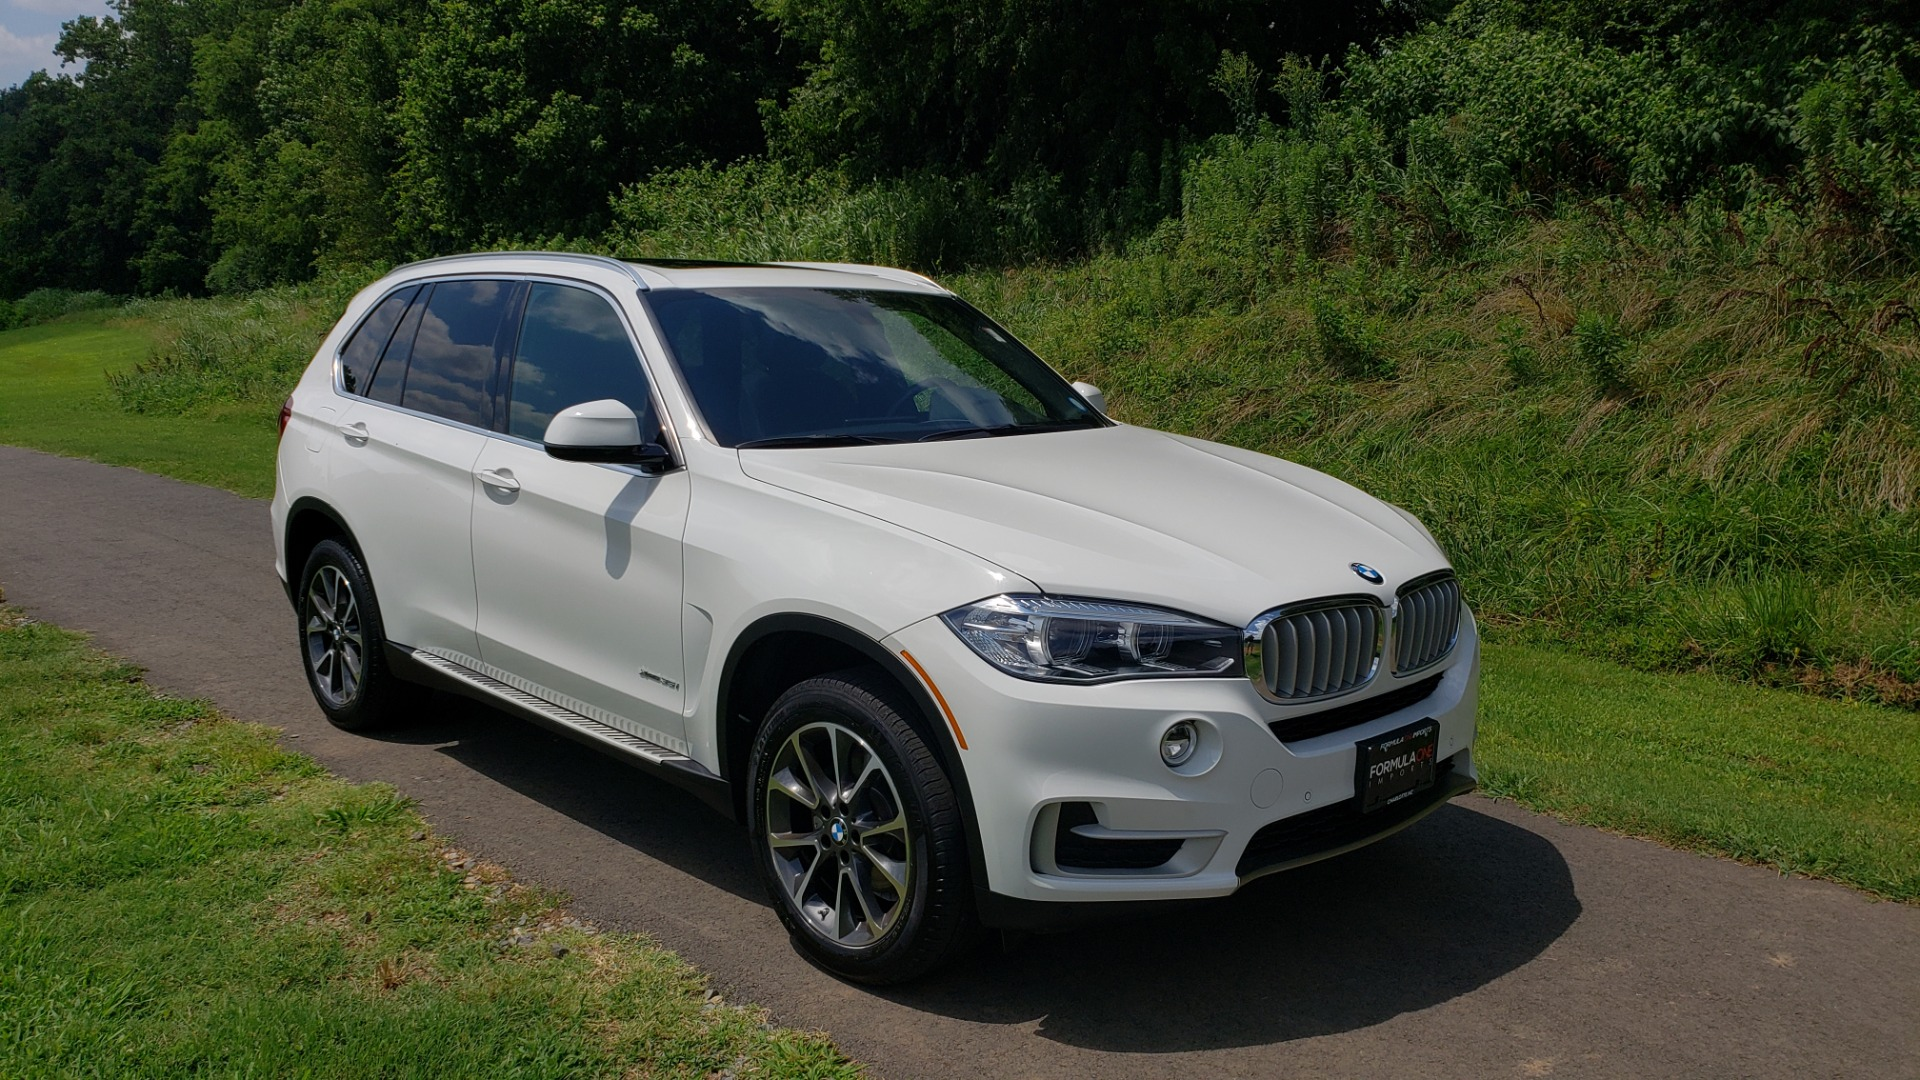 Used 2017 BMW X5 XDRIVE35I / NAV / PANOR-ROOF / HTD STS / REARVIEW for sale Sold at Formula Imports in Charlotte NC 28227 18